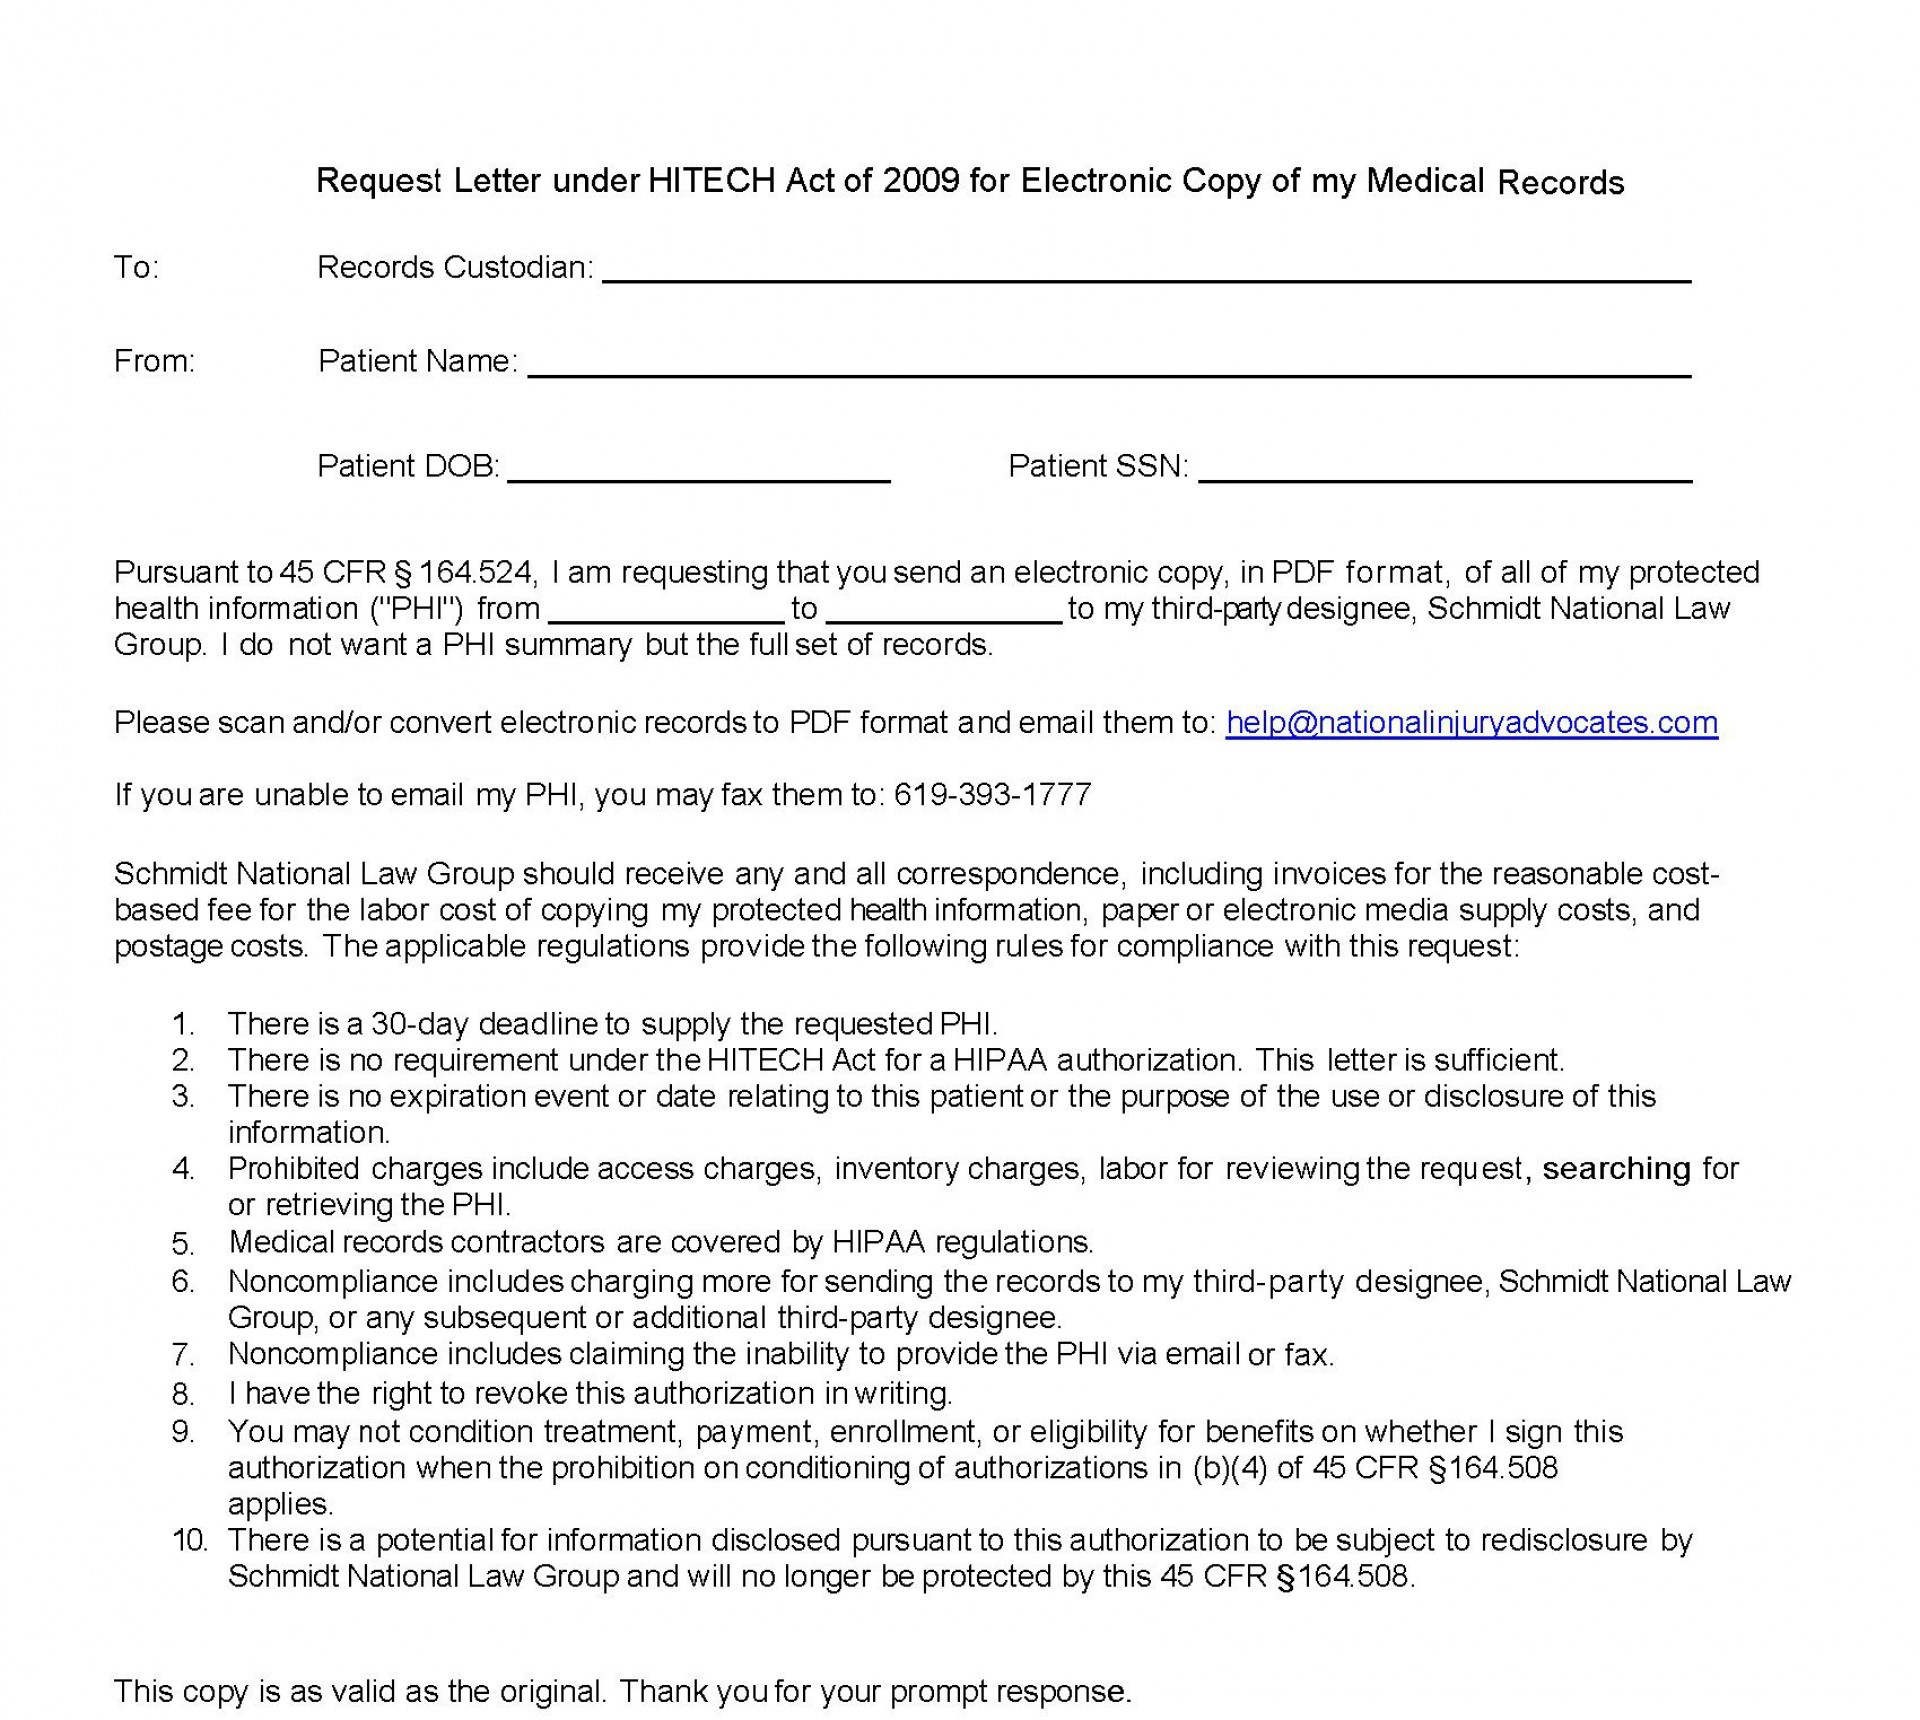 005 Excellent Medical Record Request Form Template Idea  Free Release Authorization1920